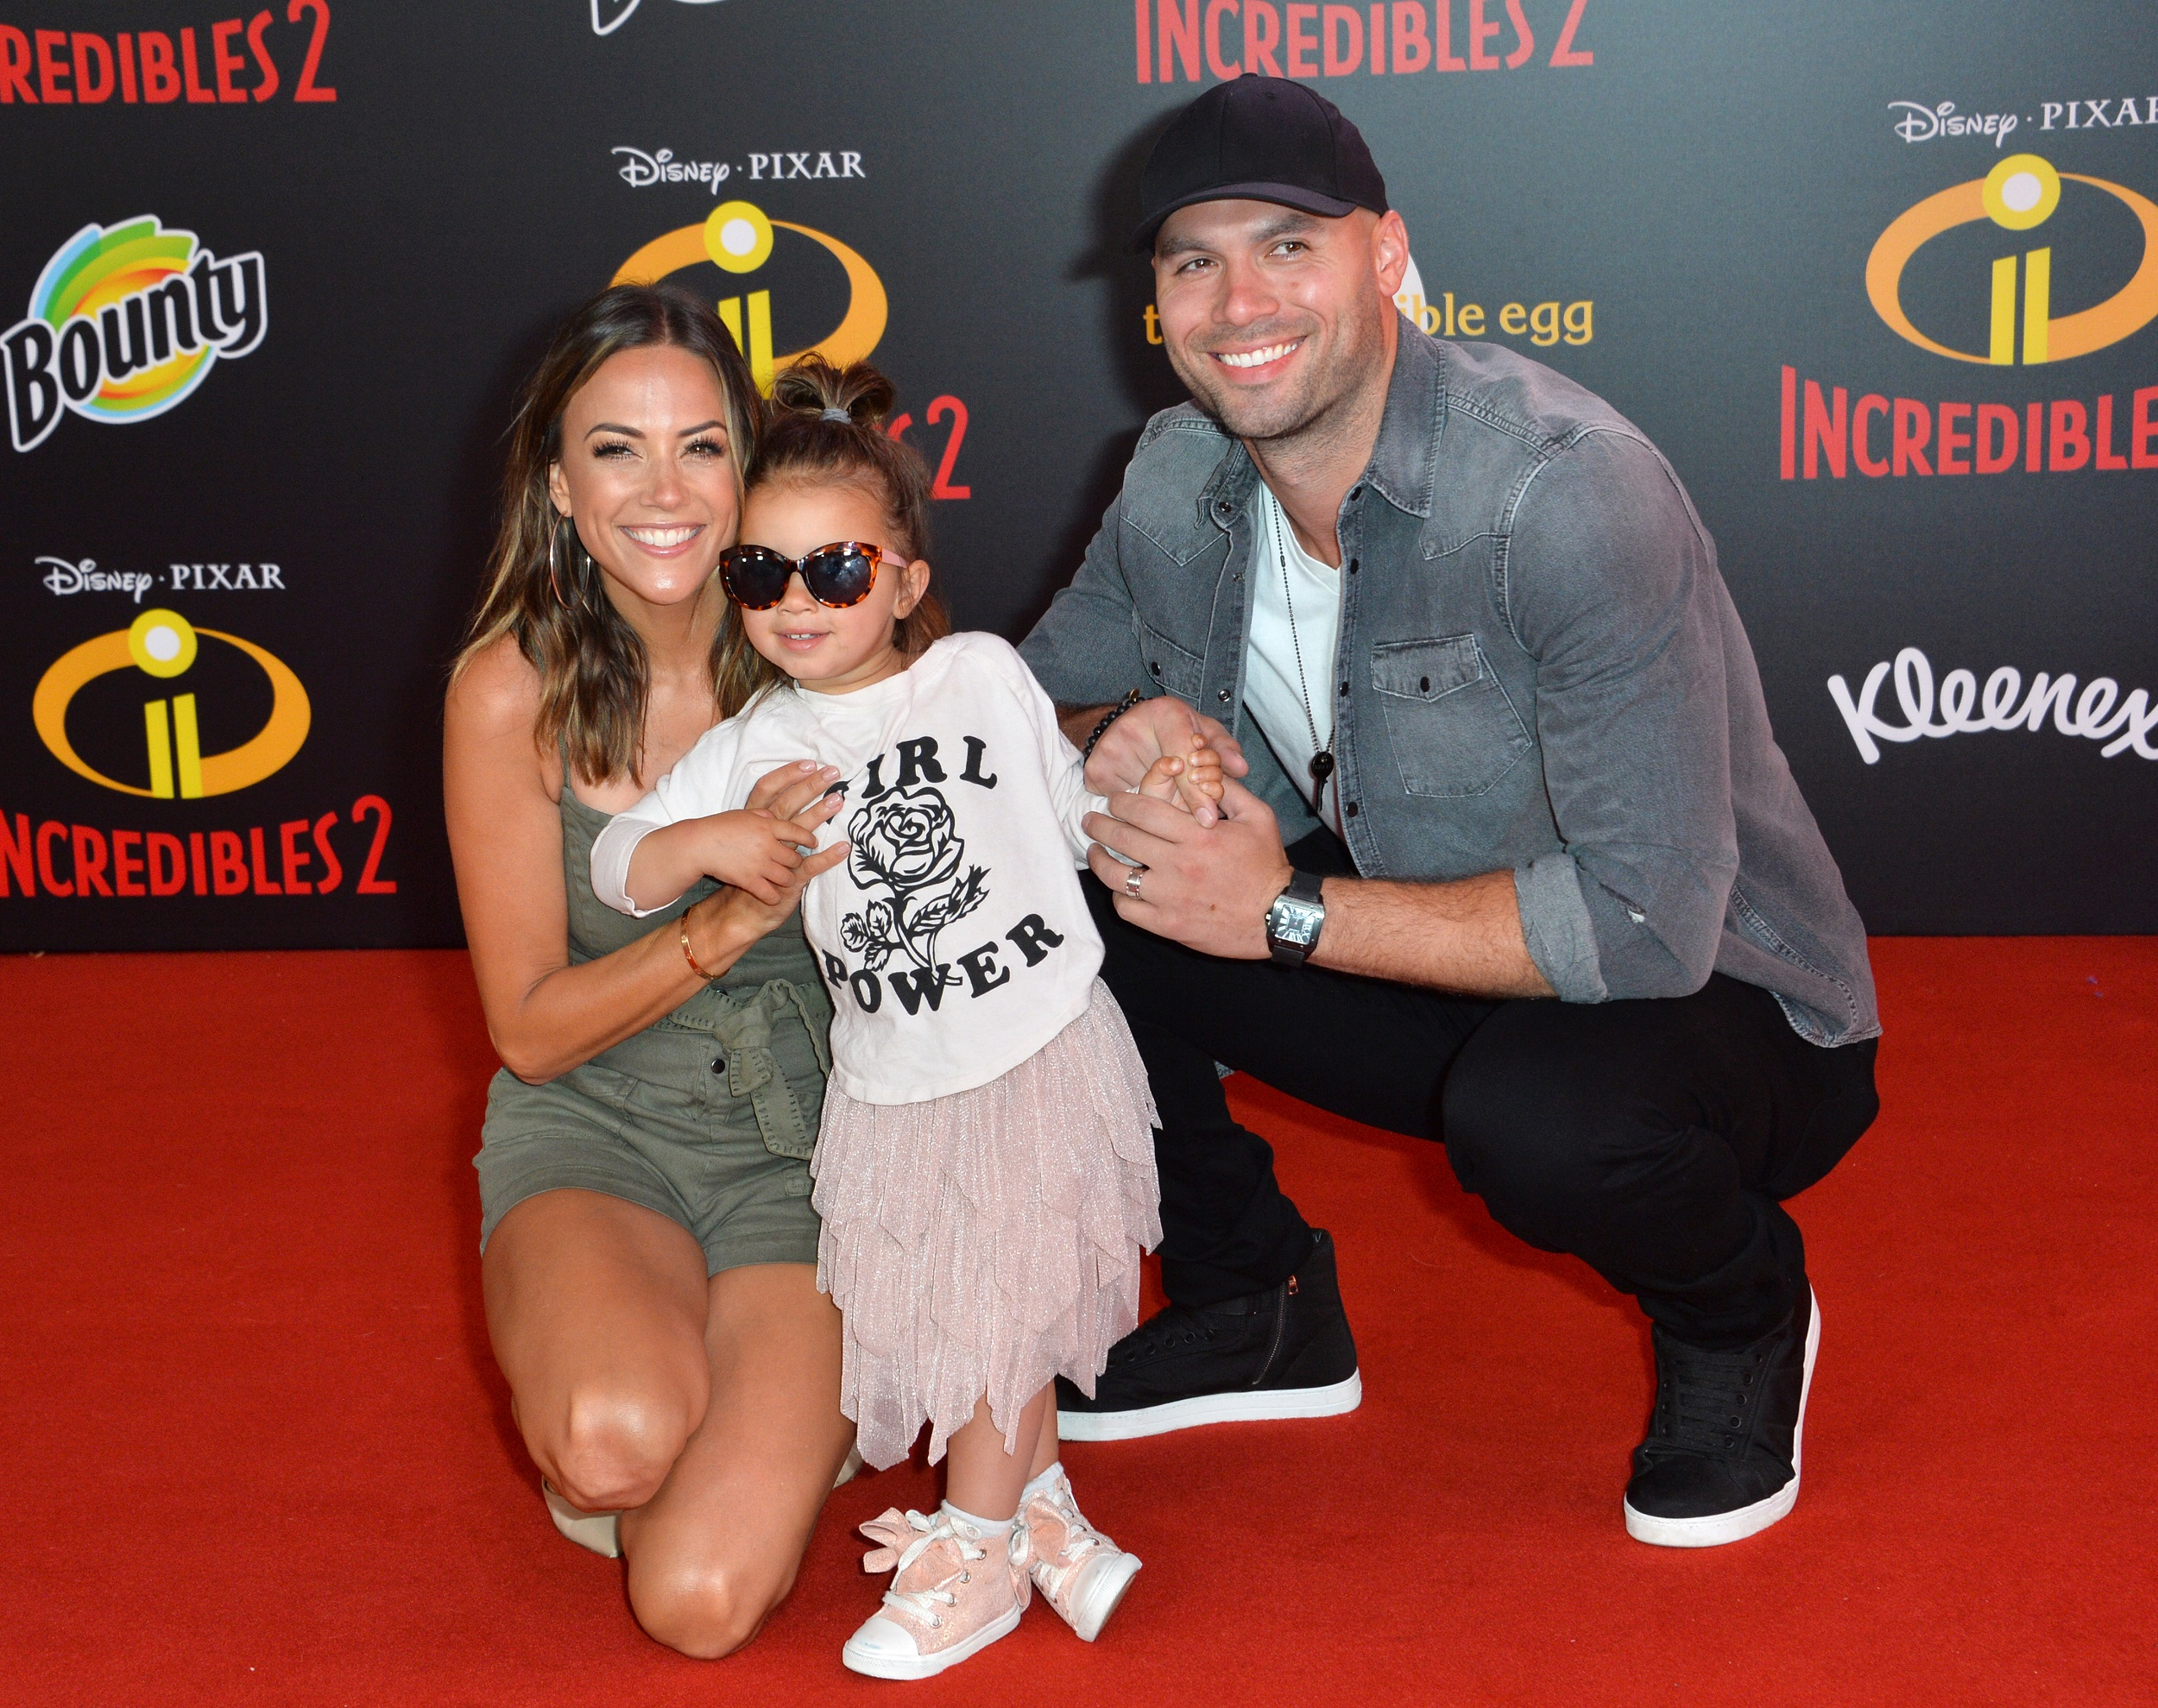 Jana Kramer and Husband Mike Caussin with Daughter Jolie Rae at Incredibles 2 Premiere